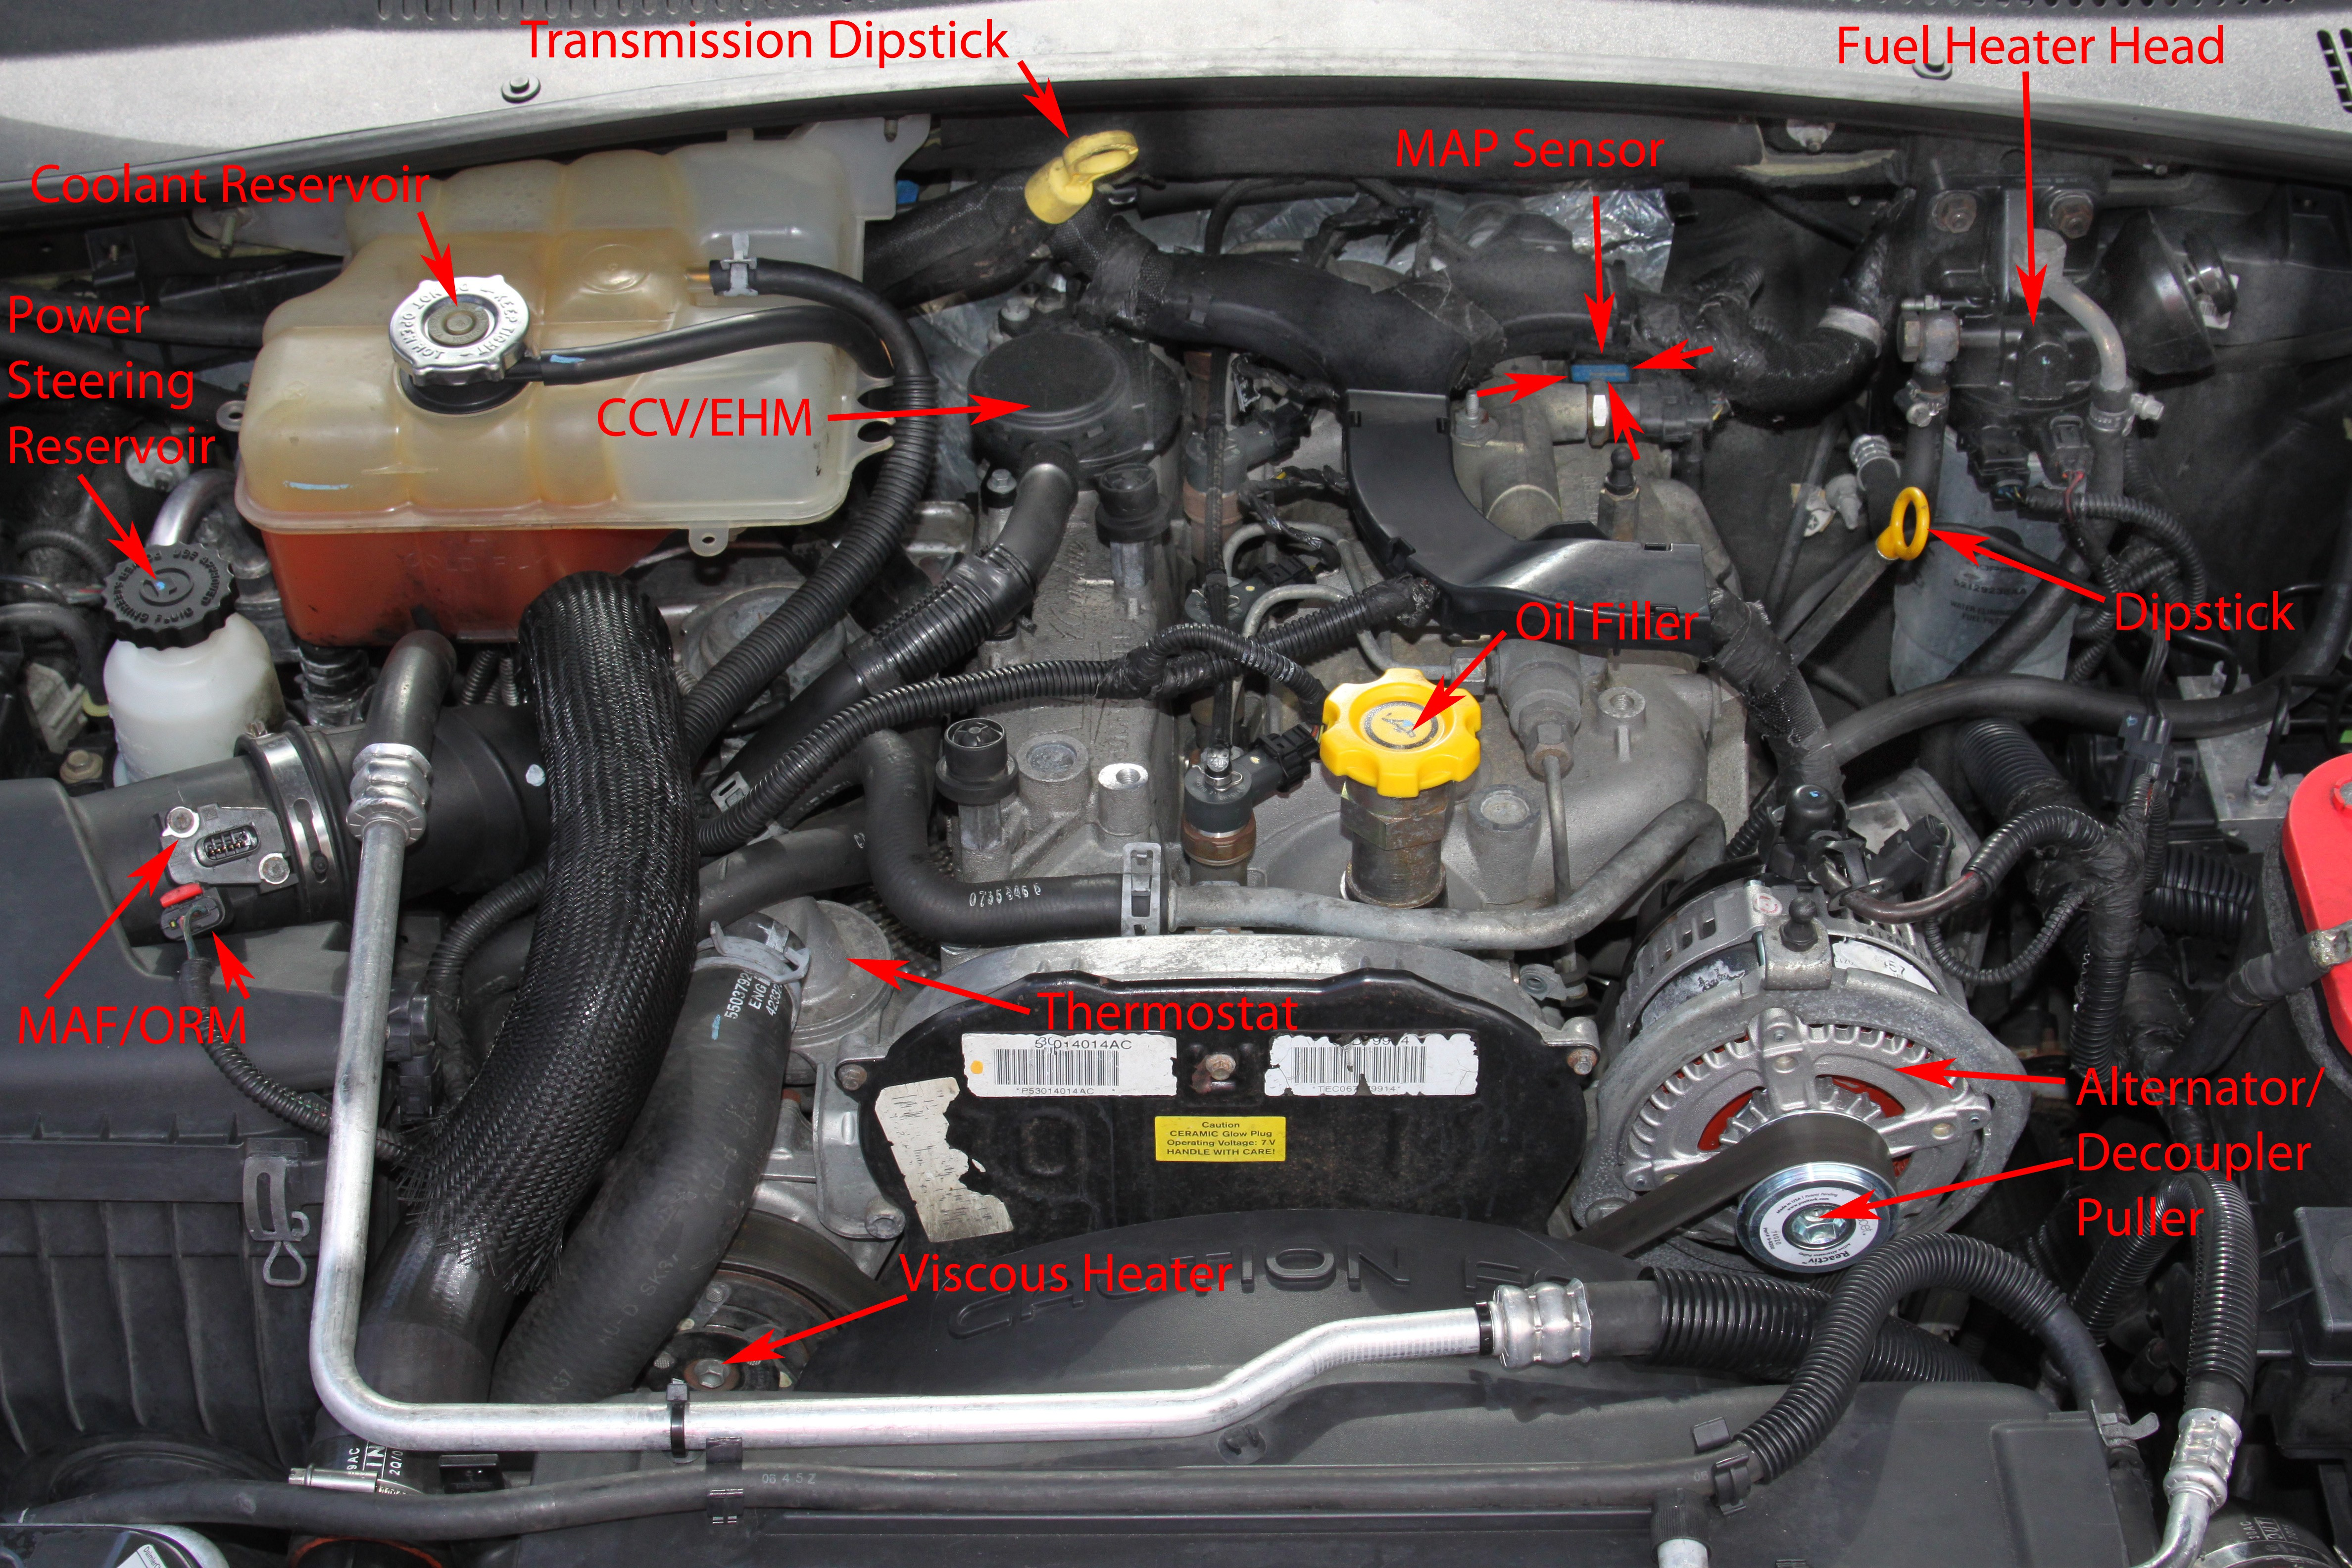 2007 Jeep Grand Cherokee Engine Diagram I Have A 93 Wagoneer Lost Jeeps View Topic Sam S Crd Noob Guide